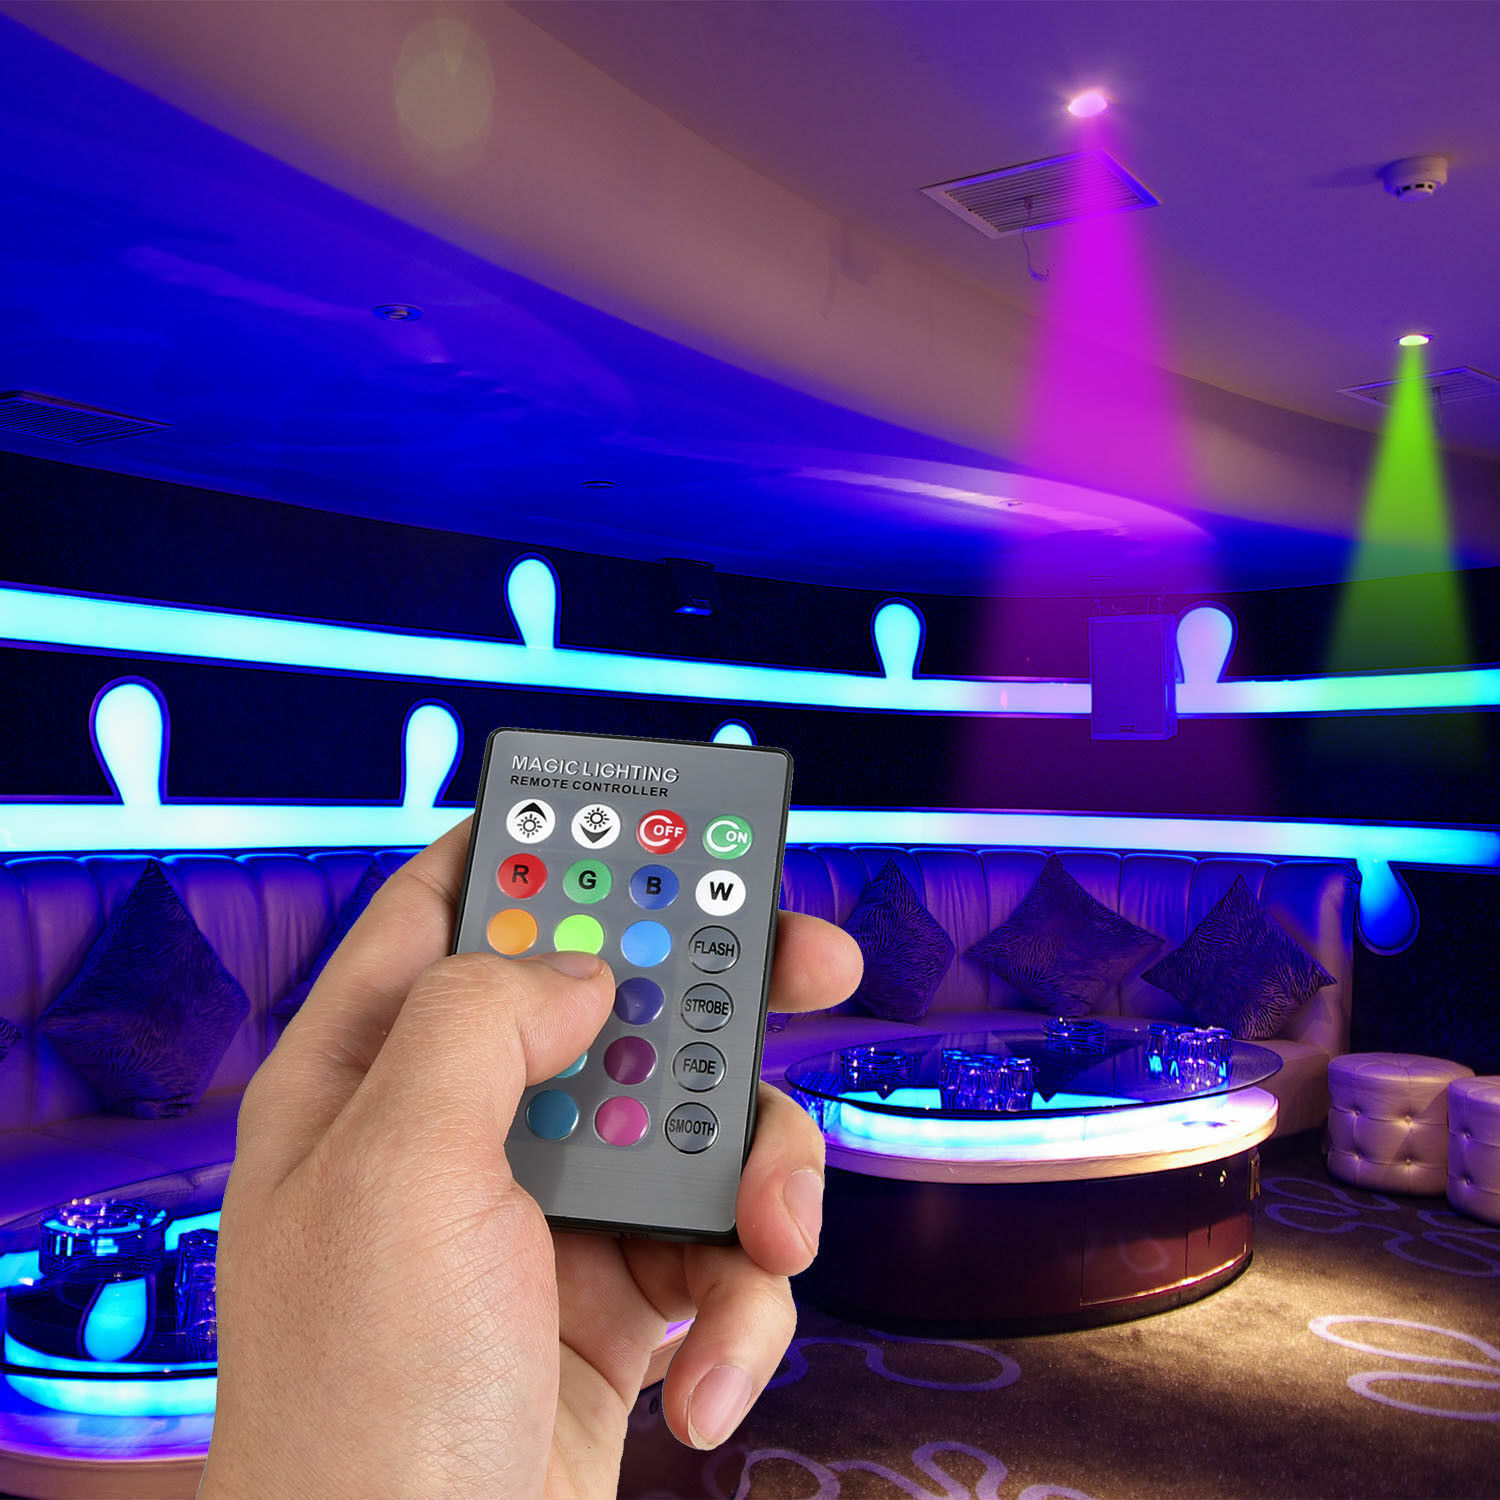 16 Color Changing Magic Light E27 3W RGB LED Lamp Bulb + Wireless Remote Control Home & Garden